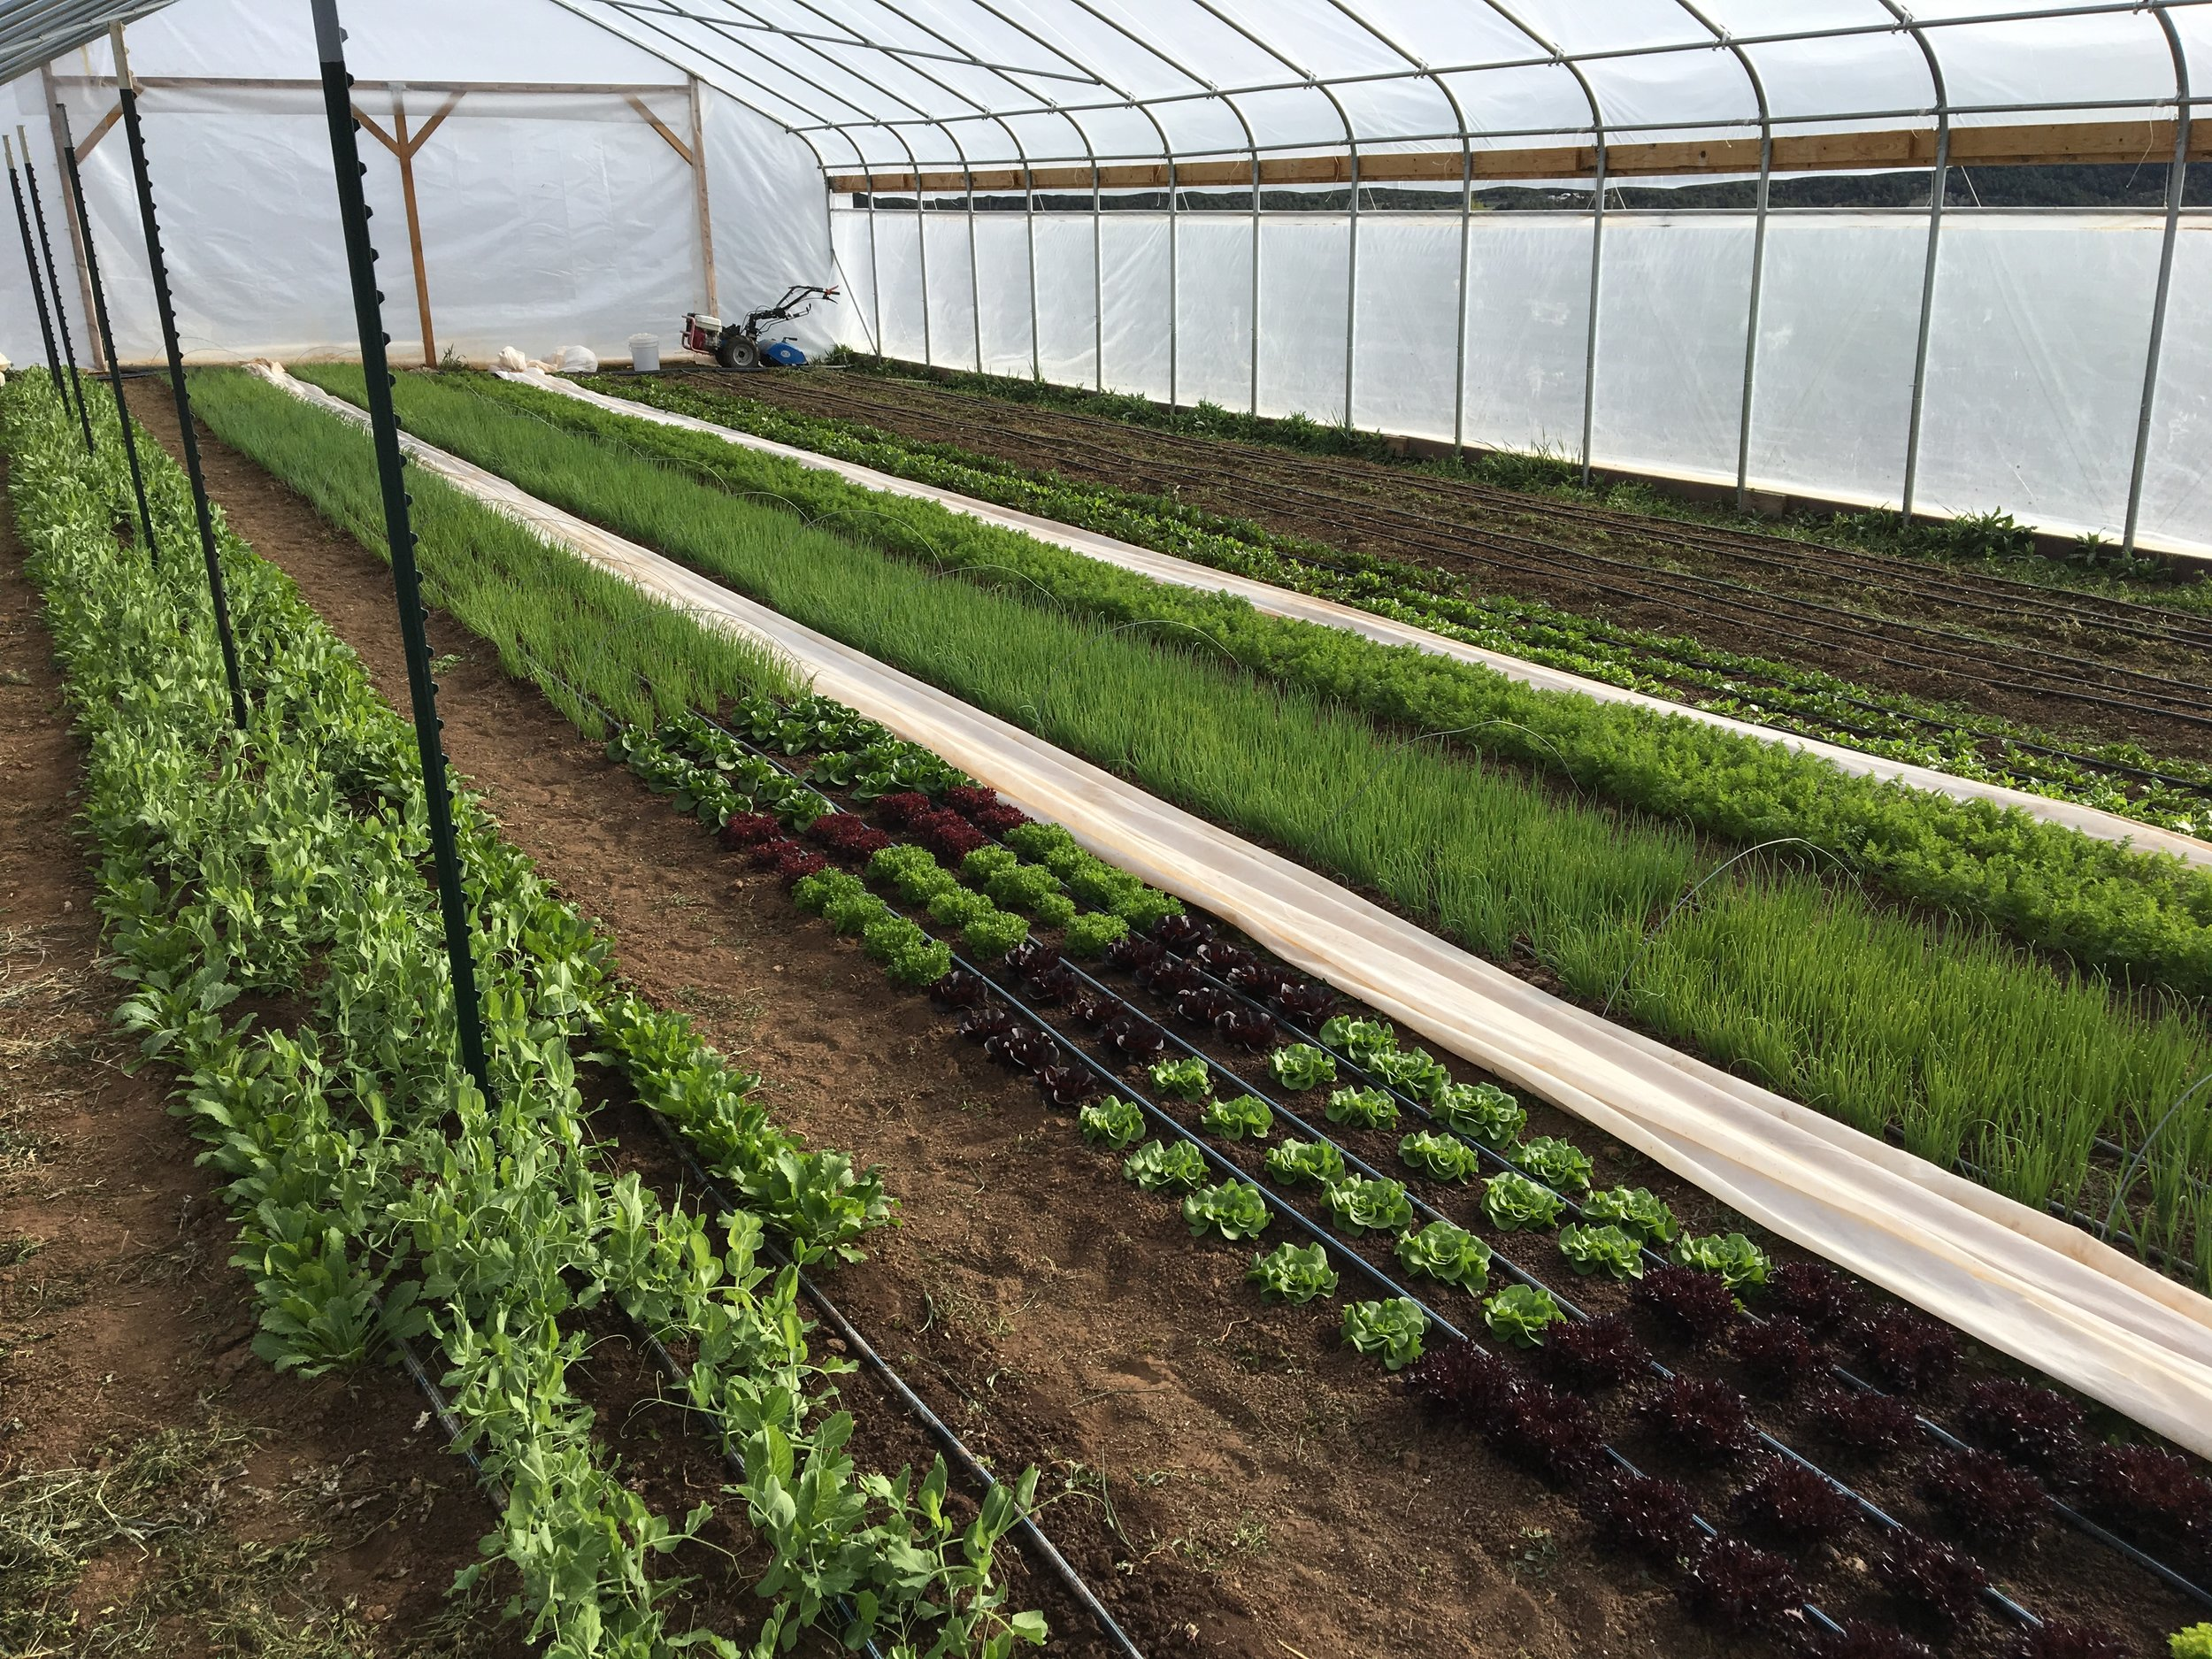 The high tunnel freshly weeded and two beds of cover cropped turned in preparation for tomatoes!